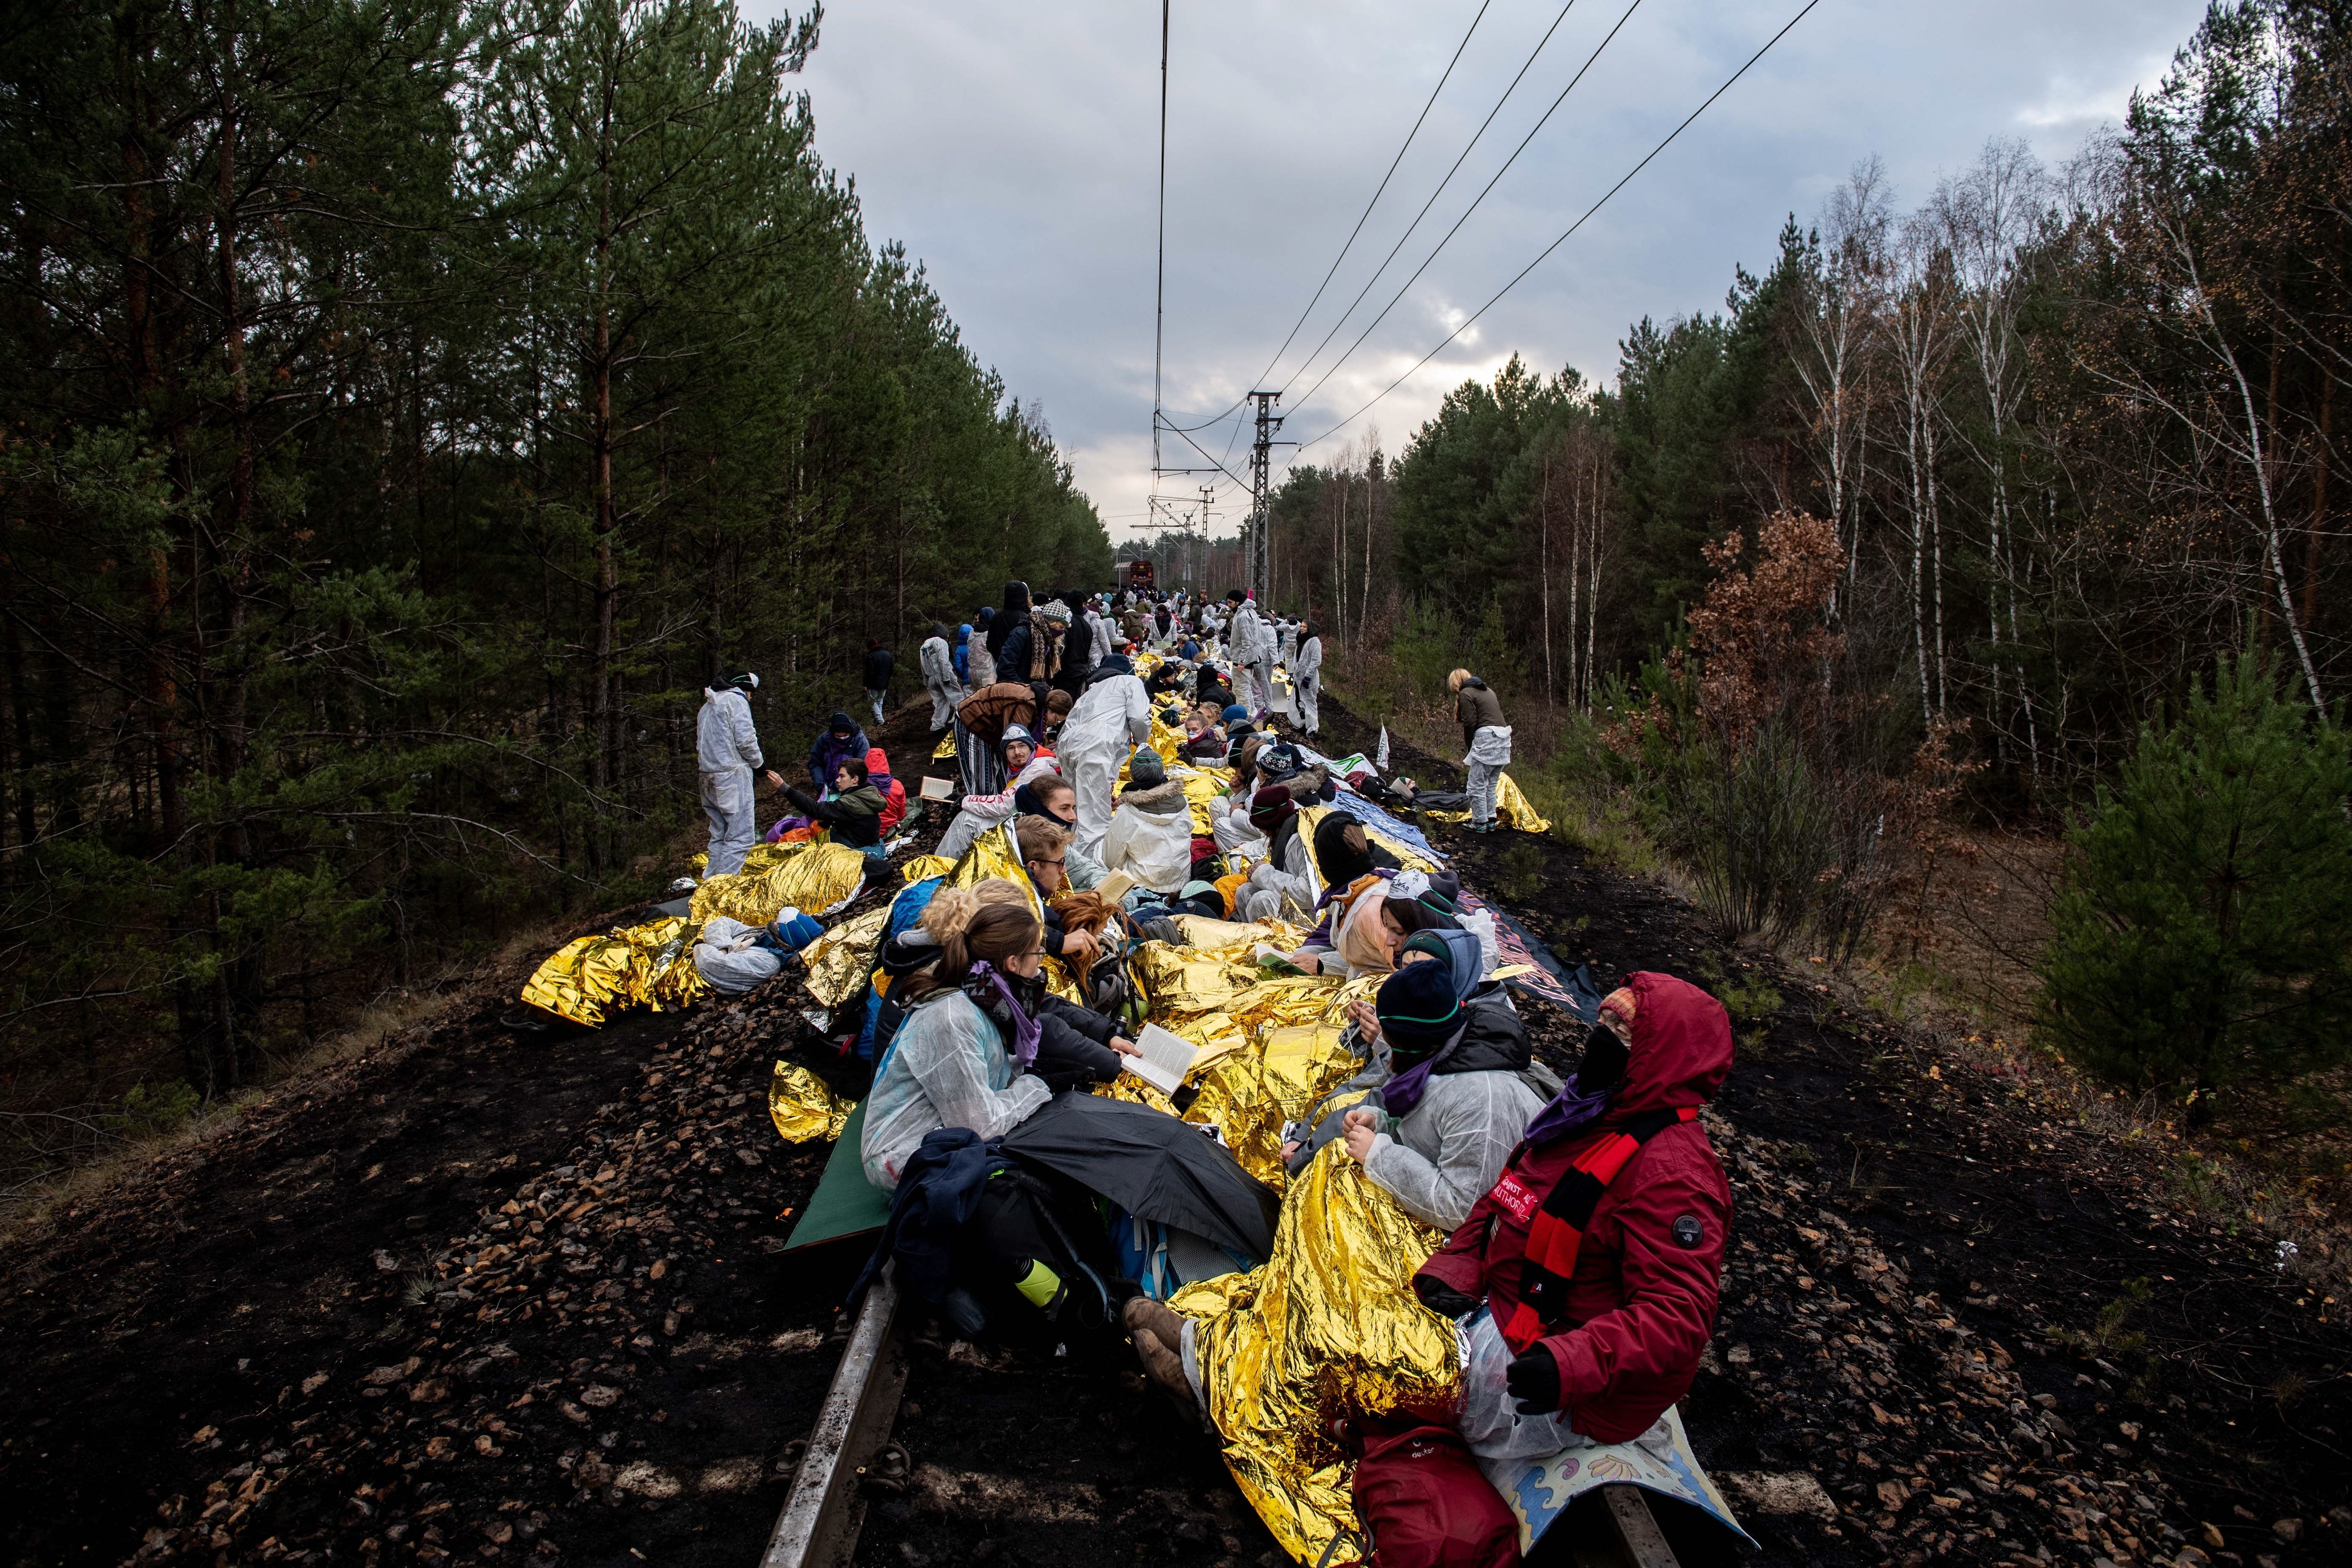 Climate activists block the rail line to the coal-fired power plant Jaenschwalde, near Cottbus in Germany, 30 November 2019.